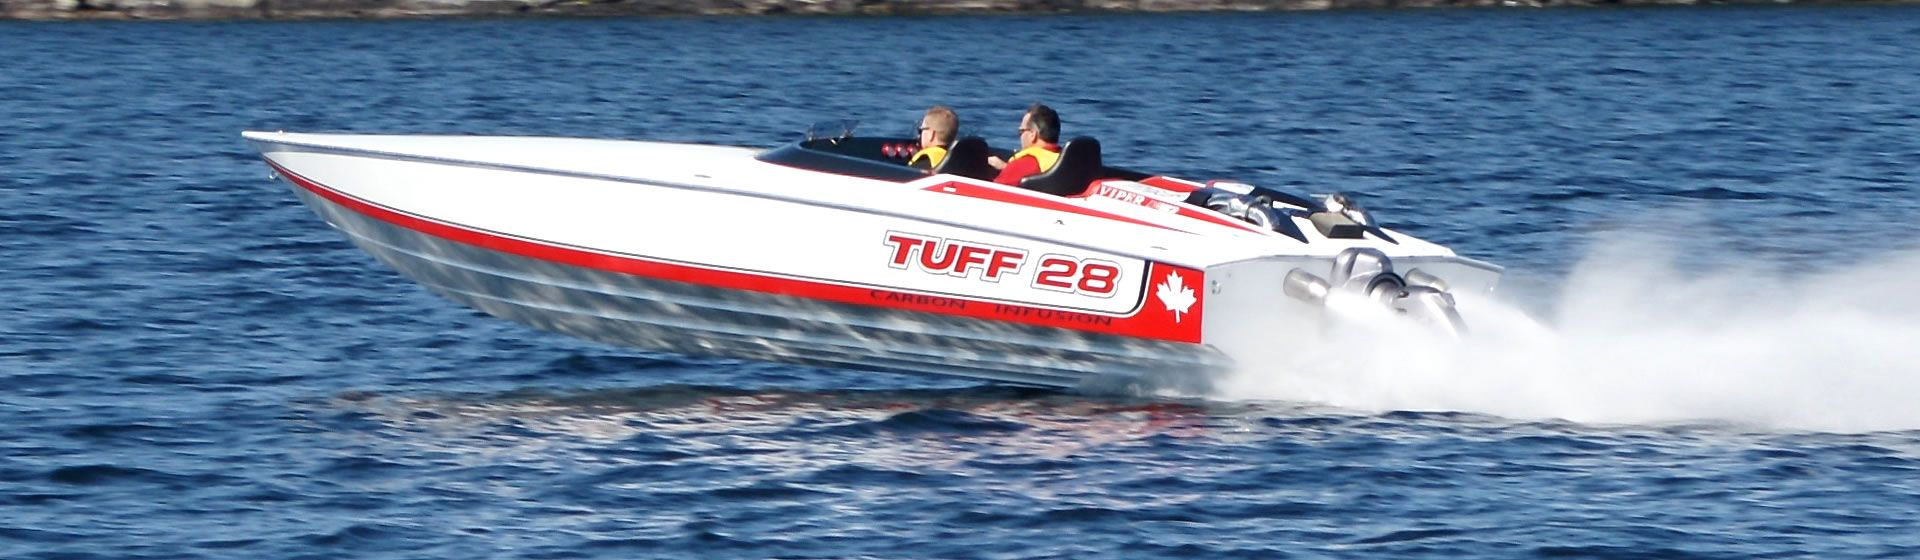 Mark's Tuff 28 recorded a 117 MPH pass at LOTO in 2016, further adjustments have it at 121 MPH with an Ilmor 725. I believe that is the fastest single engine 28 V-hull out there.